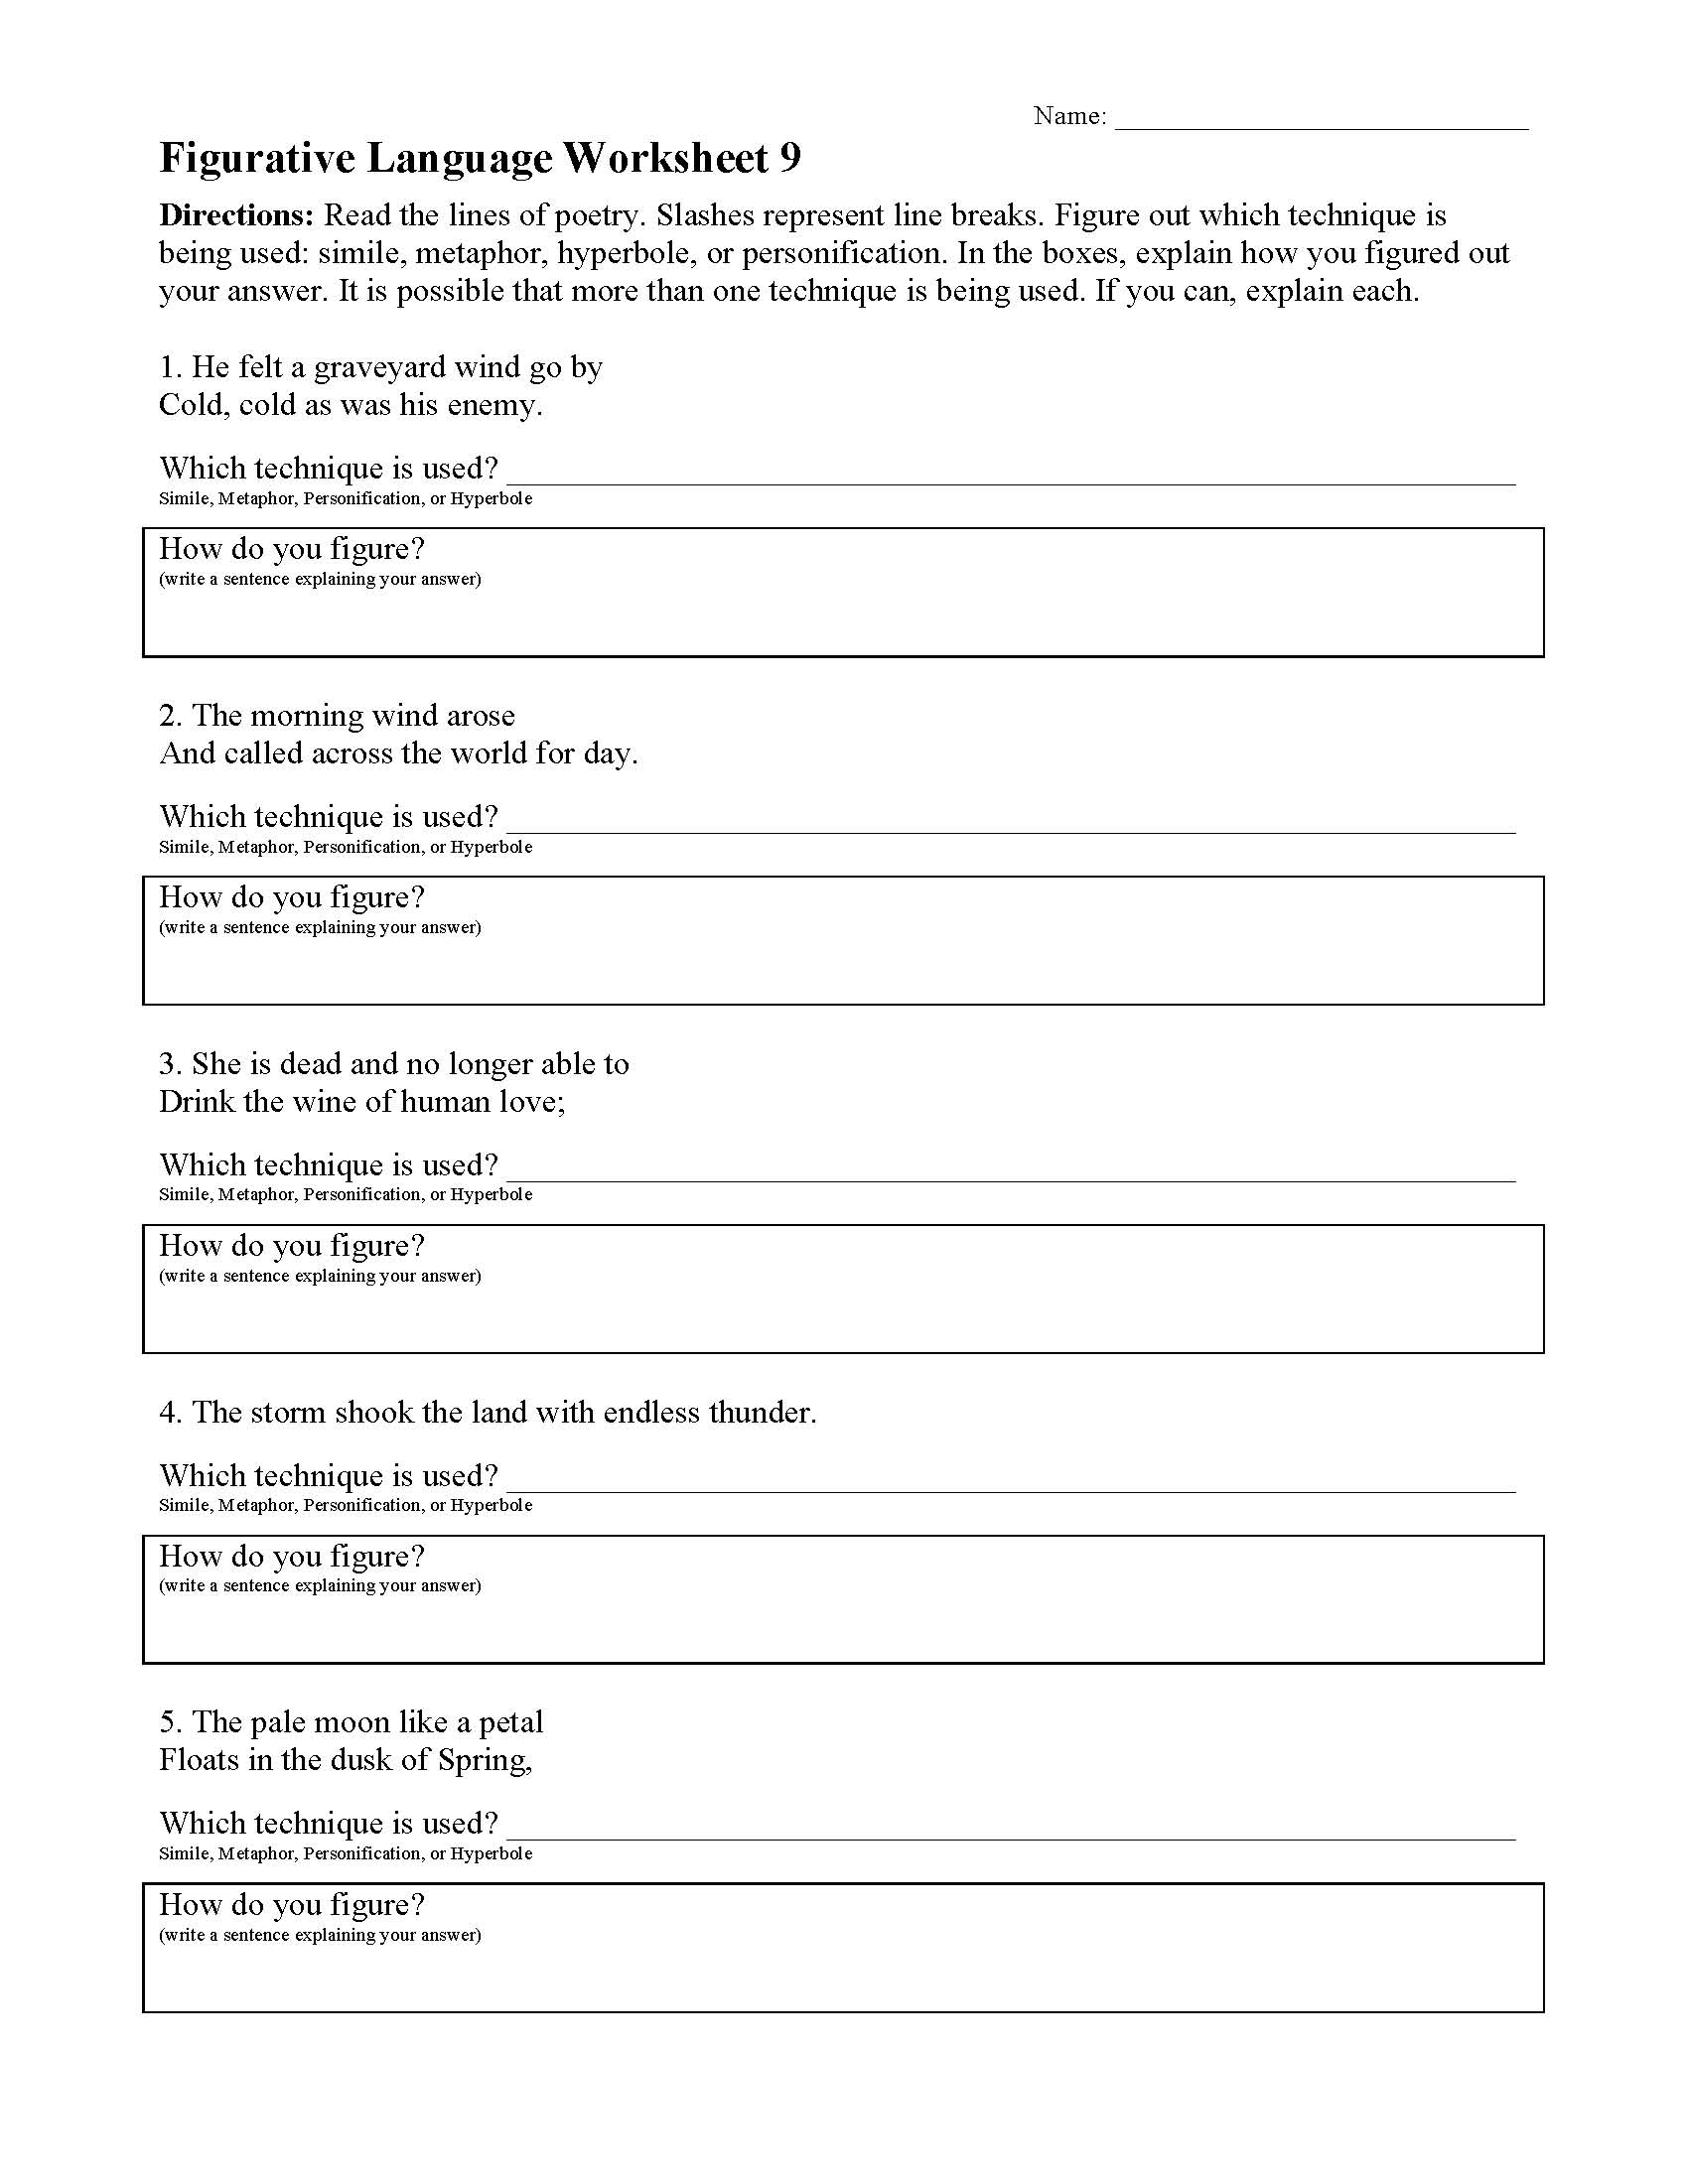 Understanding Poetry Stanza Structure Practice Worksheet